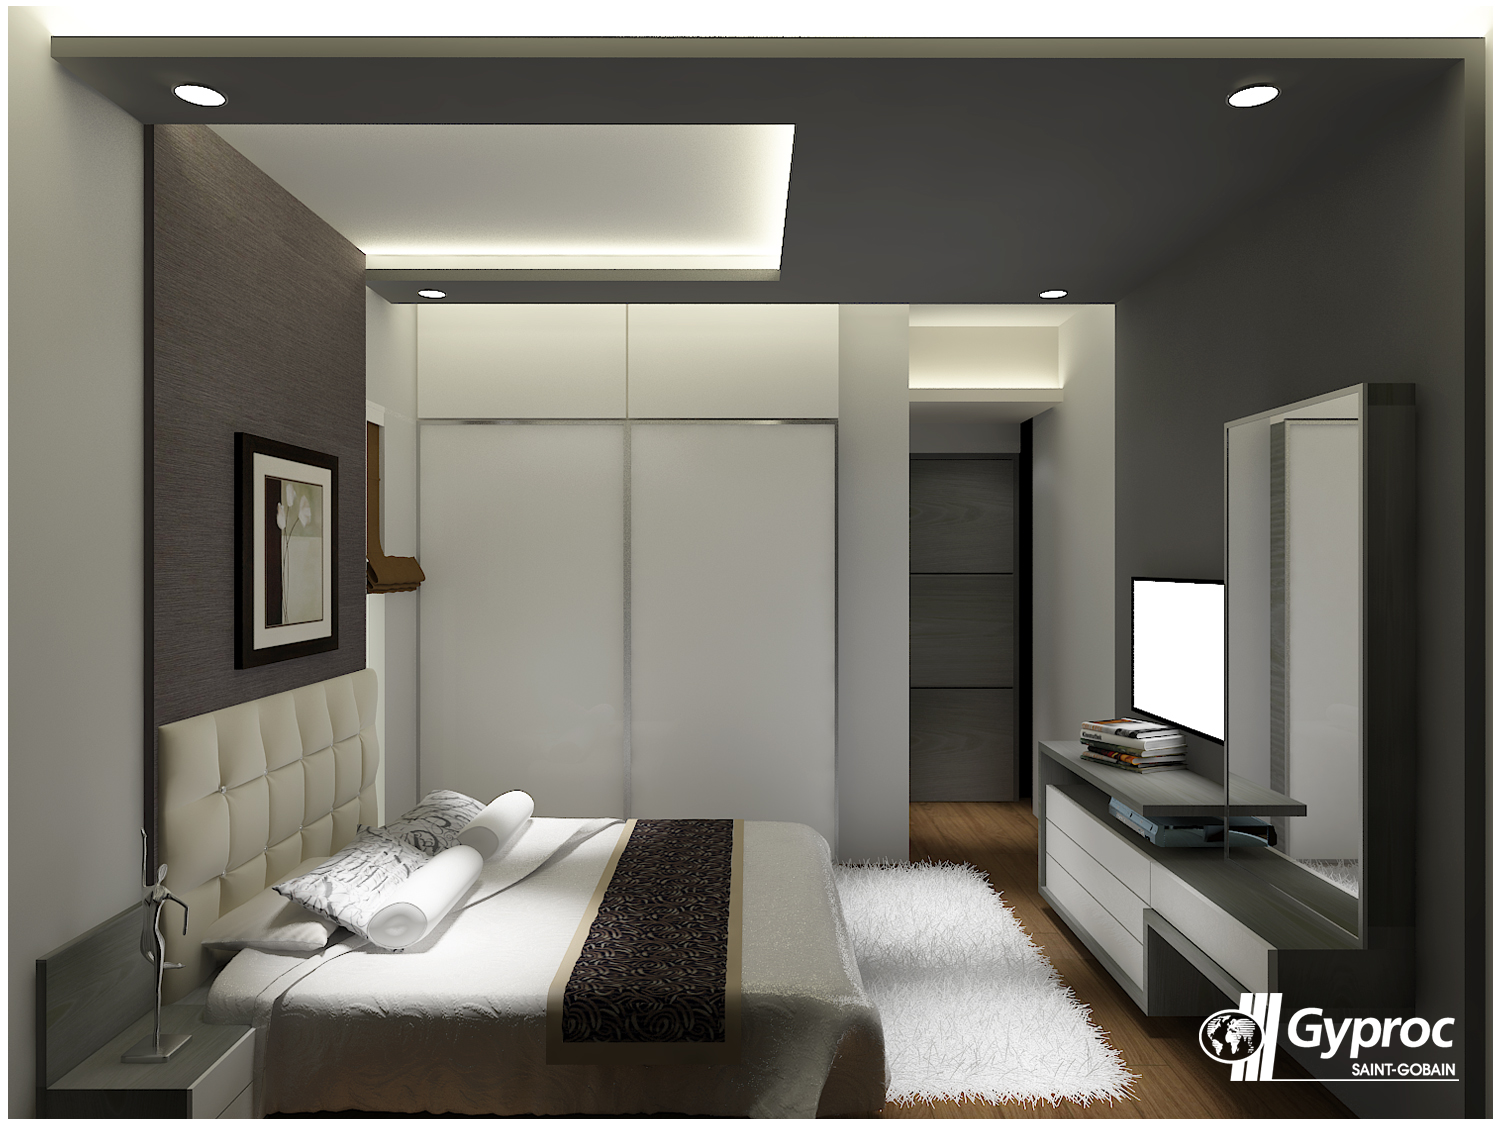 Master bedroom false ceiling  Let the shades of gray make your luxurious bedroom stand out To